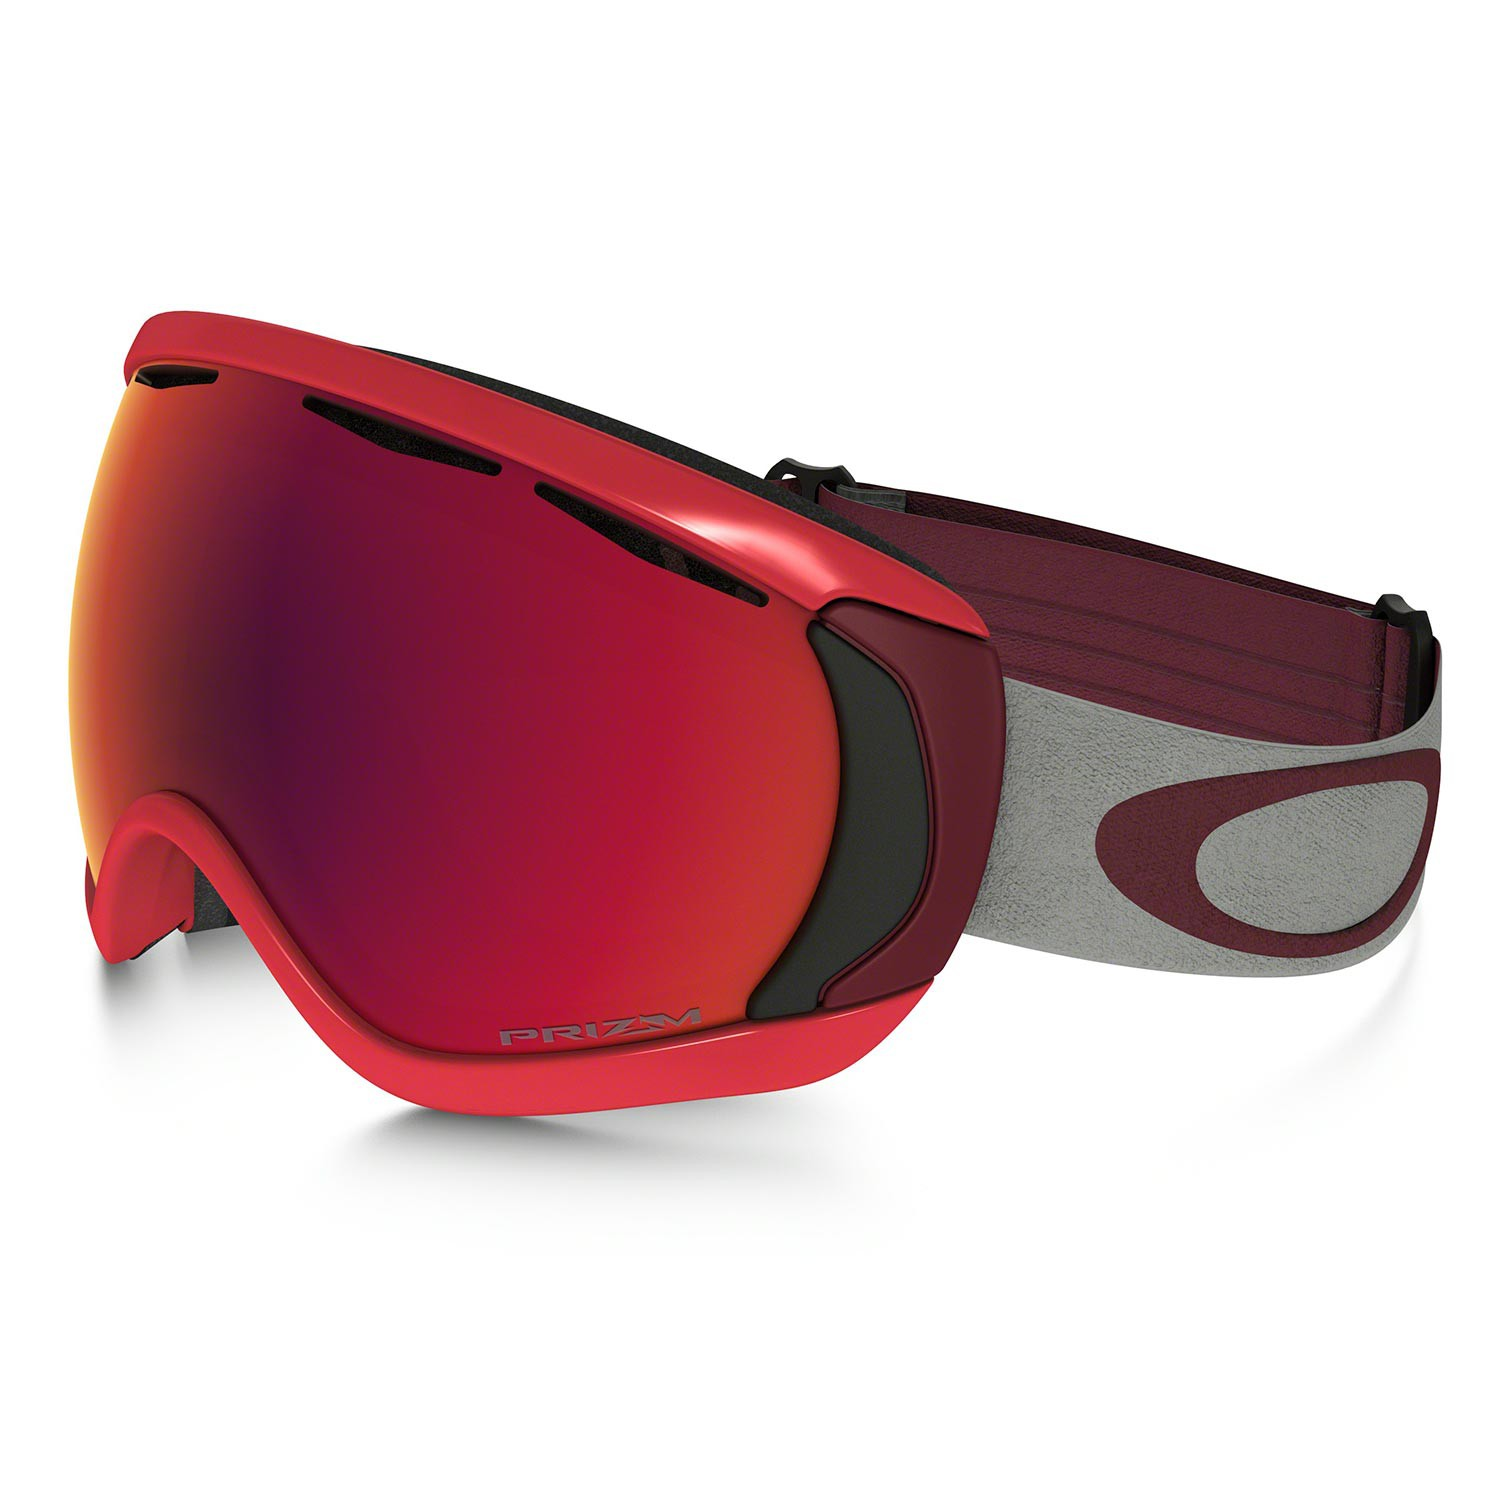 Brýle Oakley Canopy red oxide